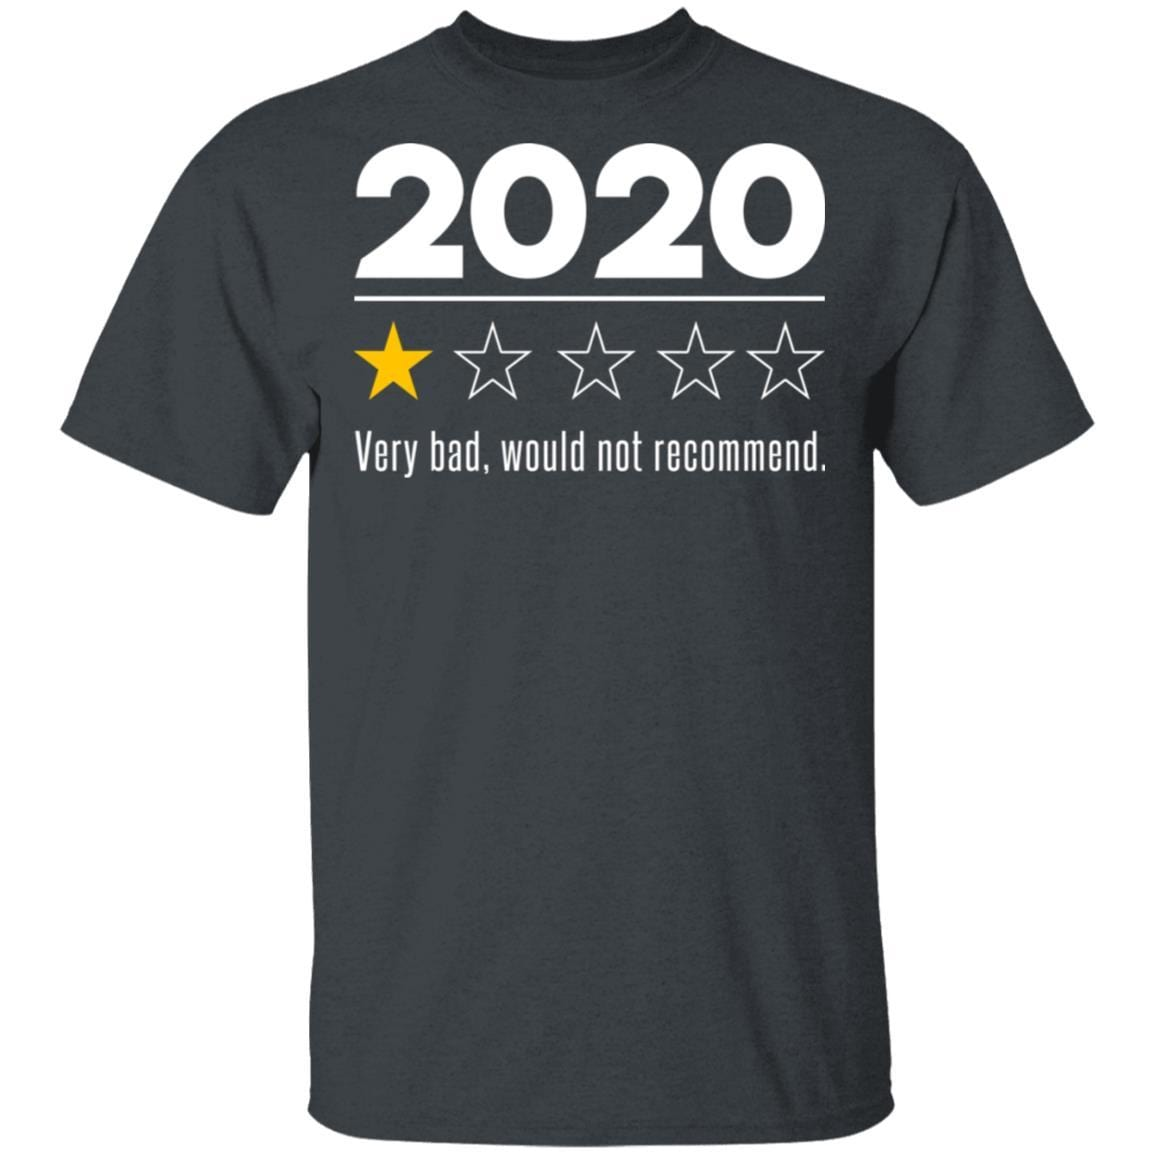 2020 This Year Very Bad Would Not Recommend T-Shirts, Hoodies 1049-9957-88282841-48192 - Tee Ript